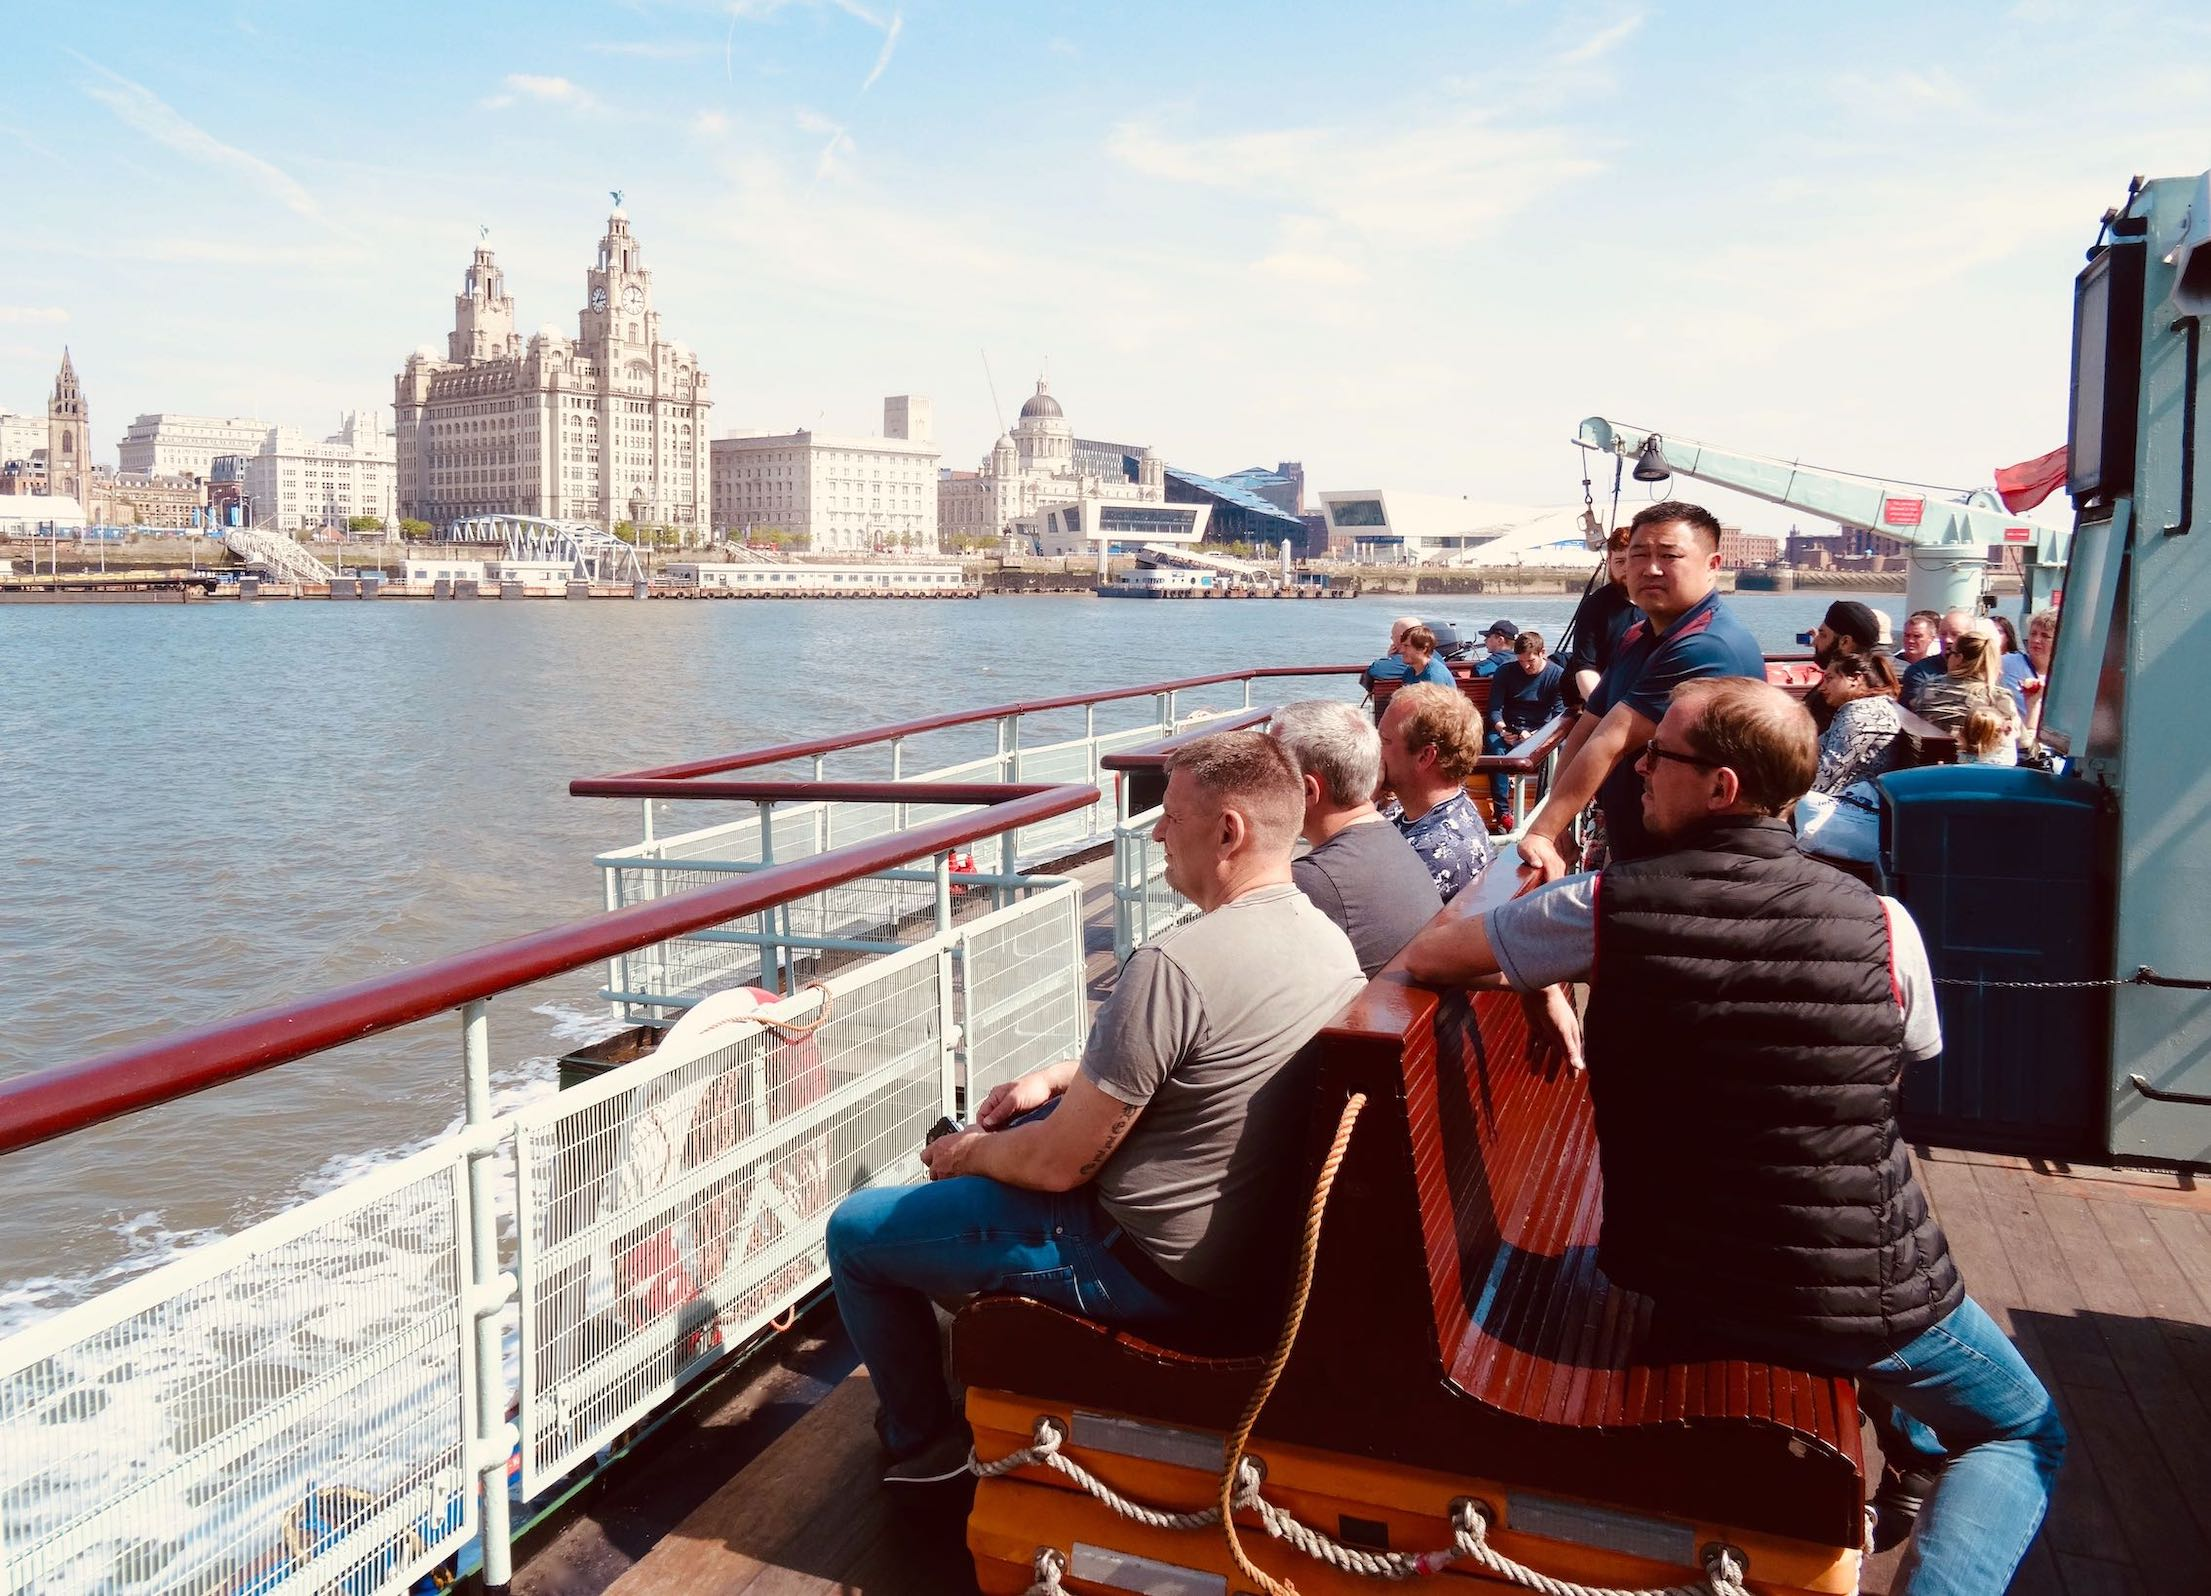 On the Ferry Cross the Mersey in Liverpool